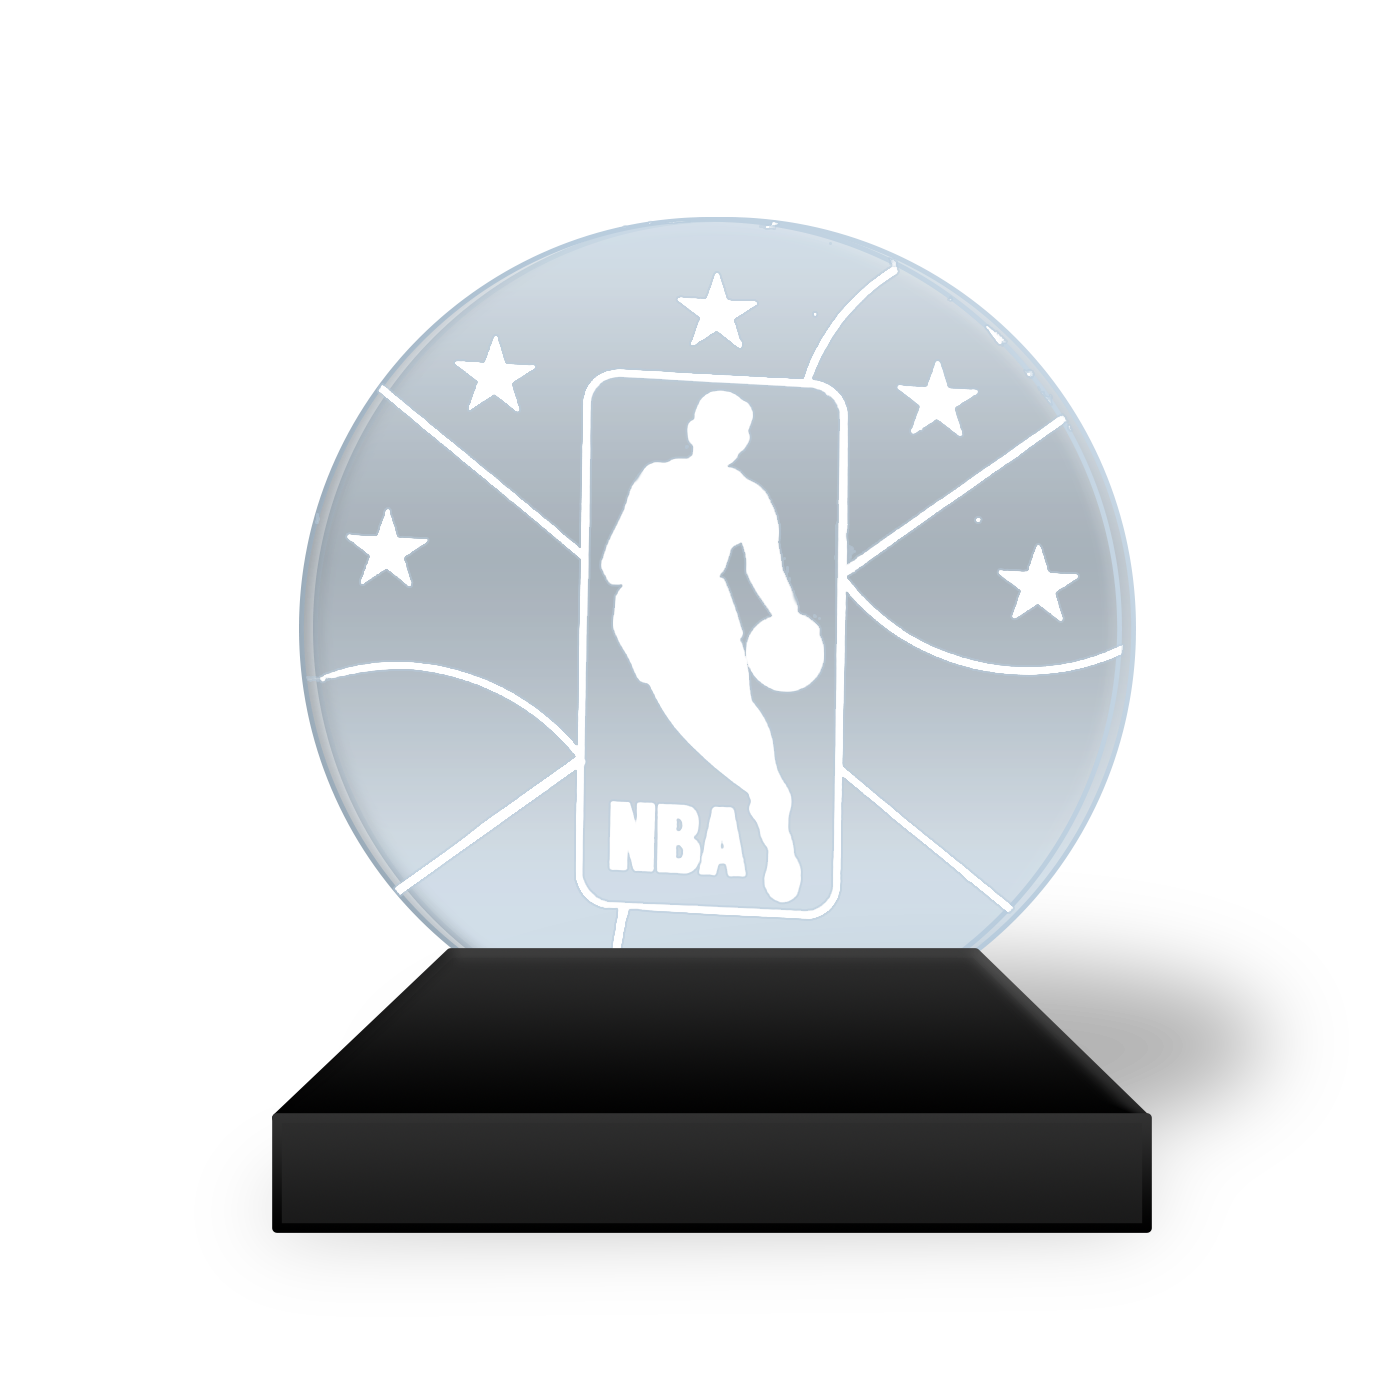 All star game most. Nba mvp trophy png vector royalty free library